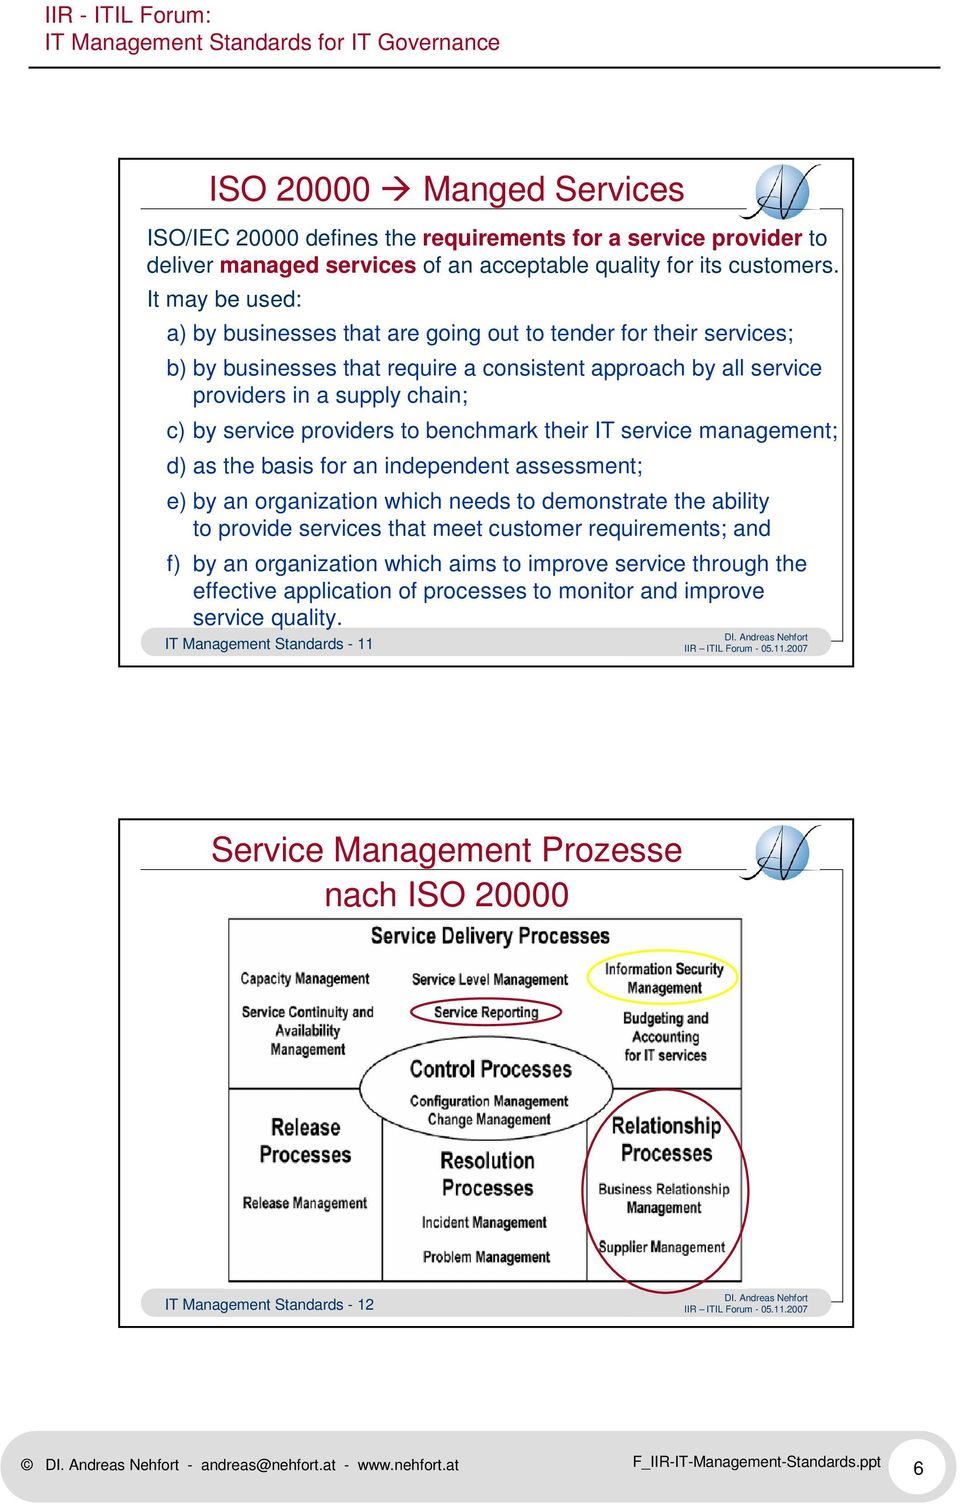 providers to benchmark their IT service management; d) as the basis for an independent assessment; e) by an organization which needs to demonstrate the ability to provide services that meet customer